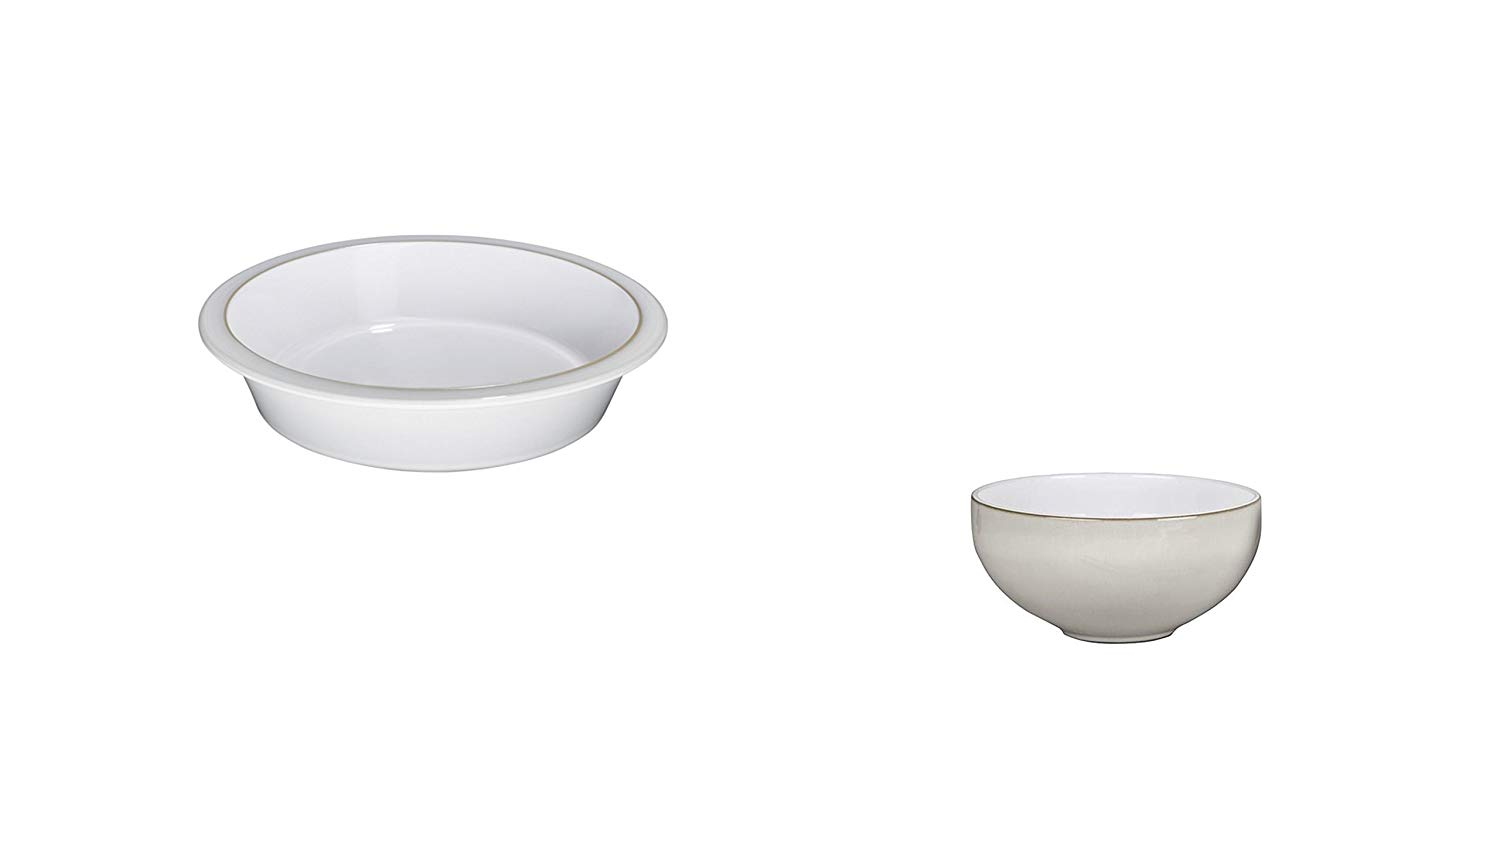 Denby Natural Canvas Round Pie Dish and Ramen/Large Noodle Bowl, Set of 2